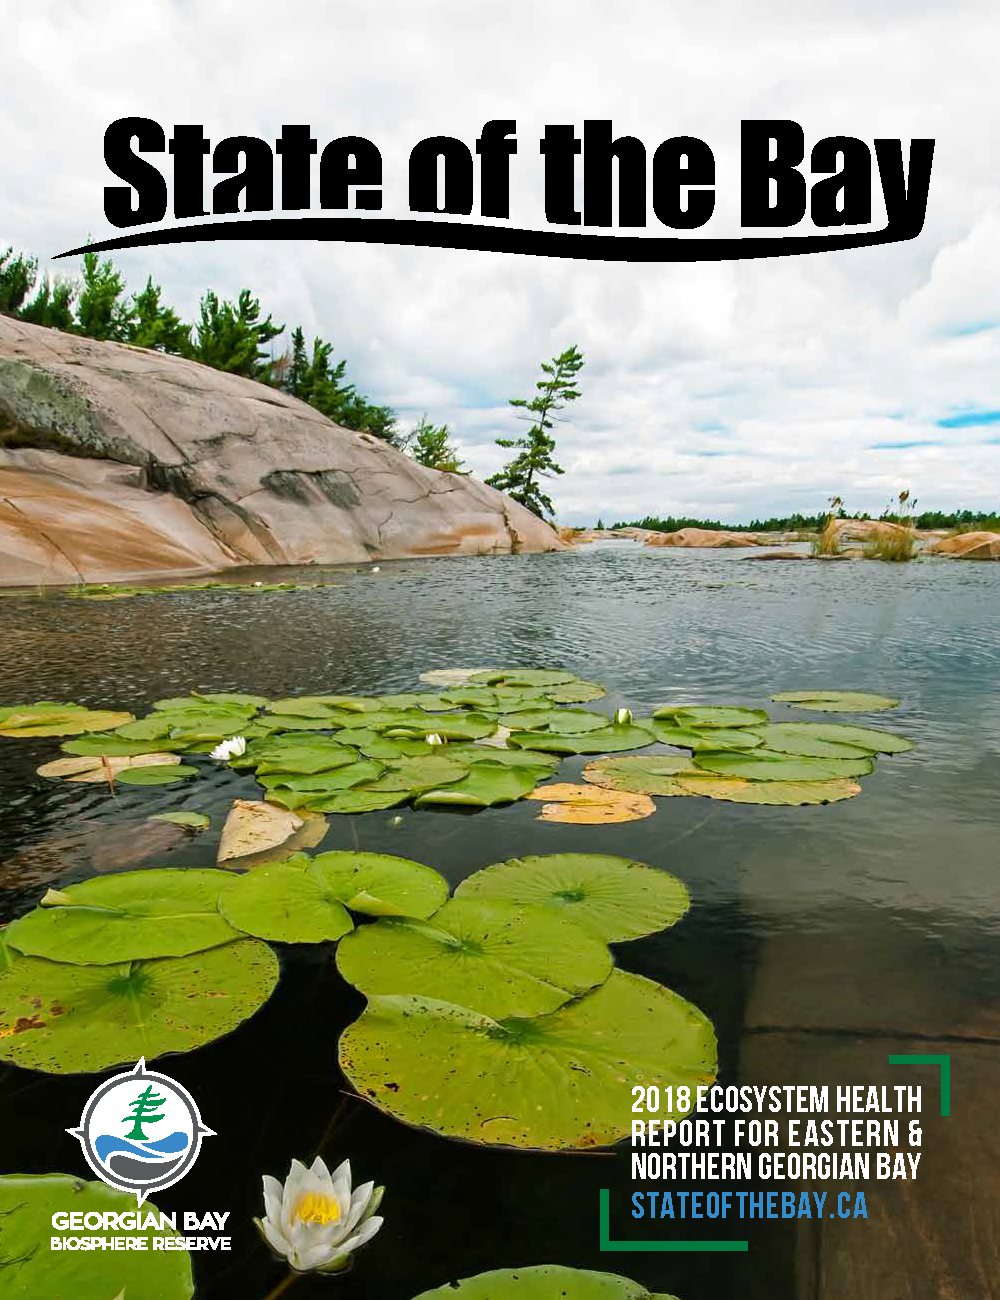 The State of the Bay Project